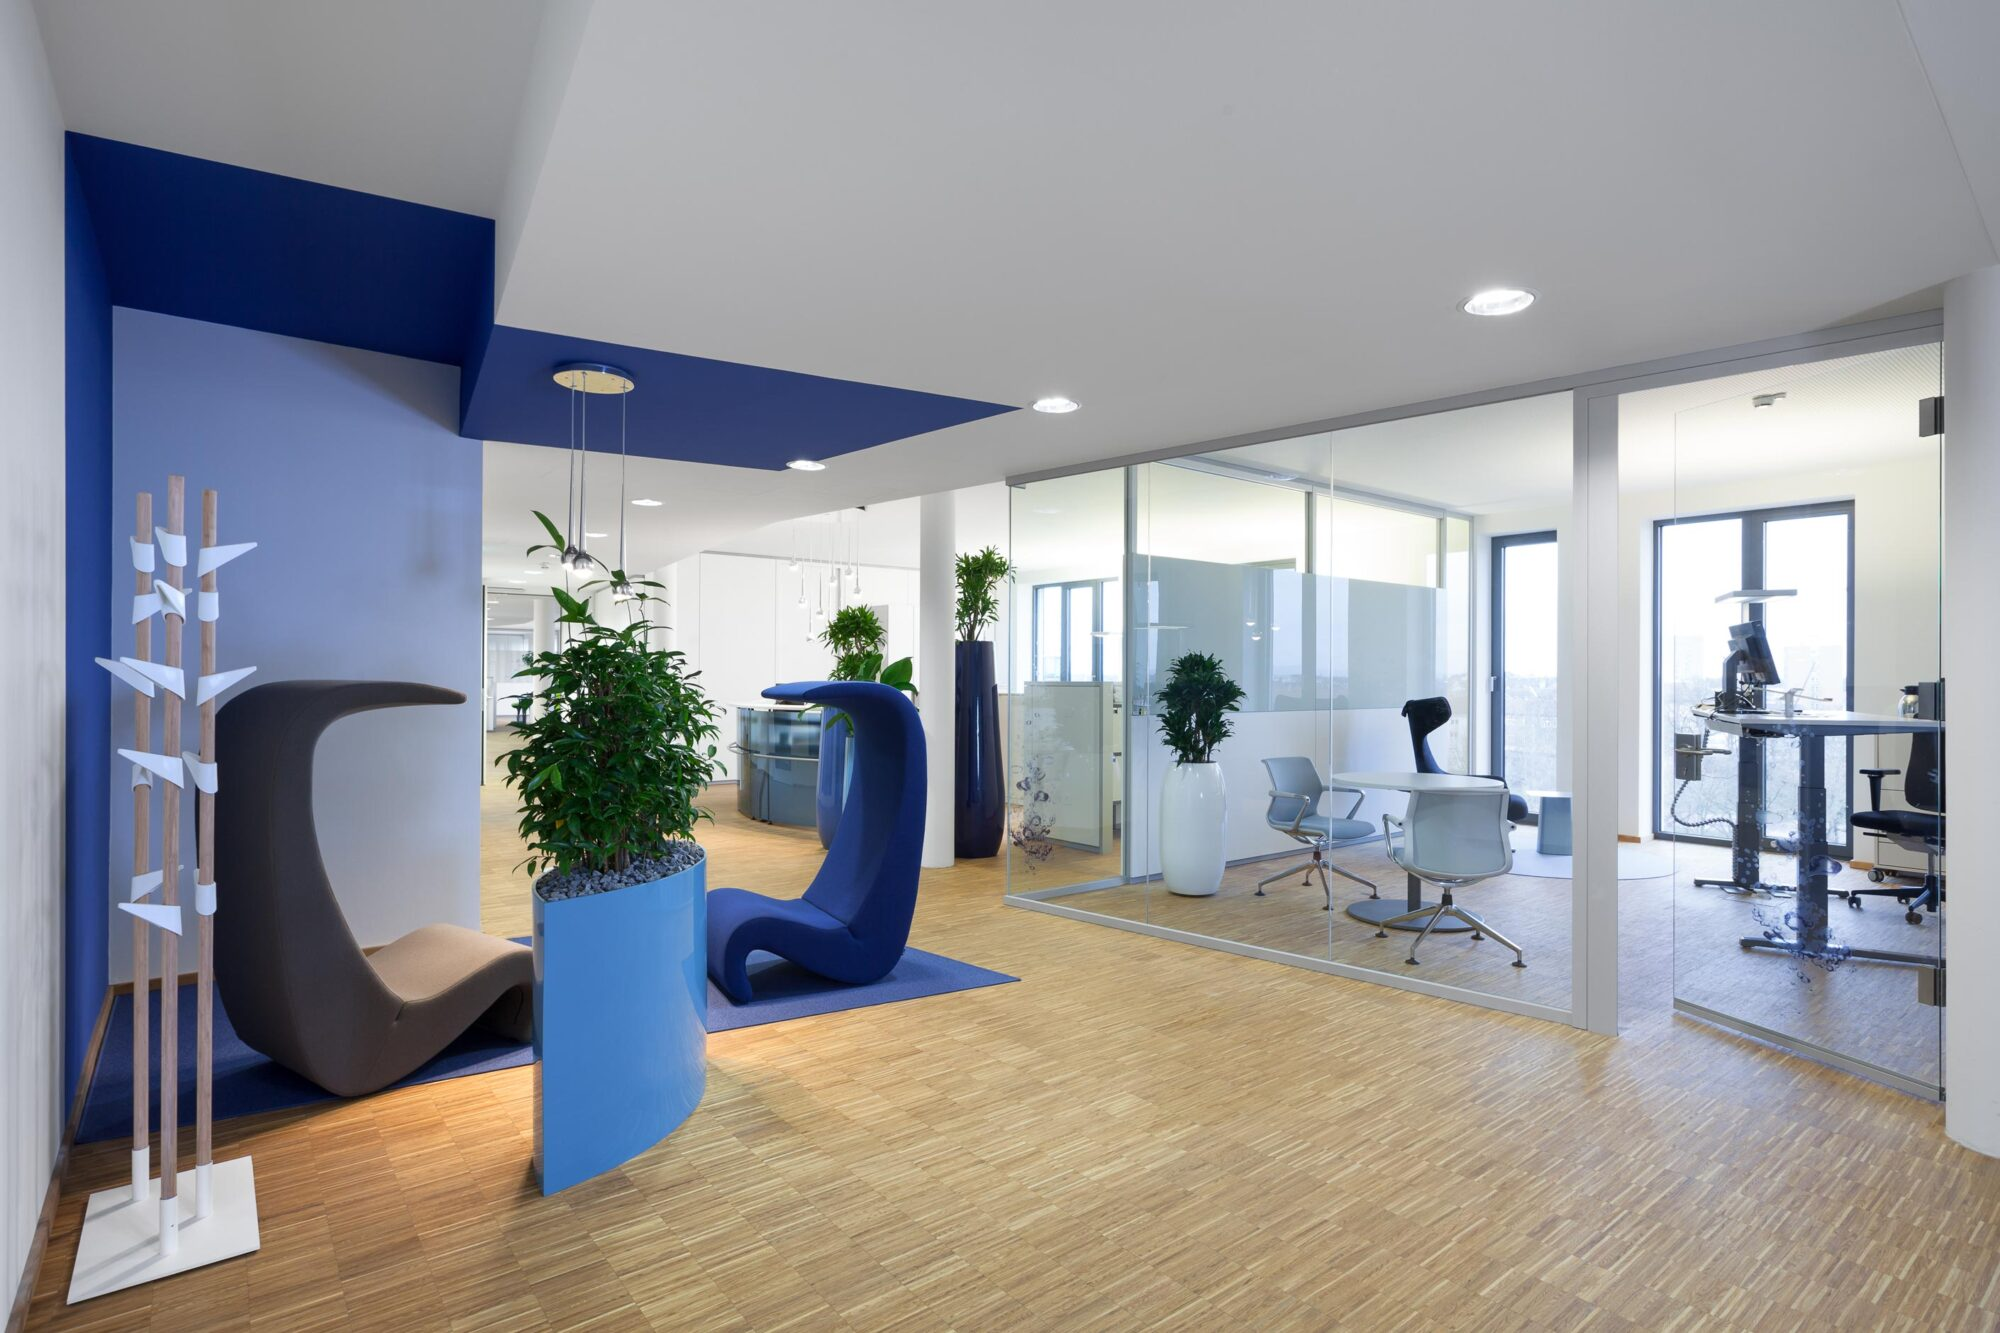 feco-feederle│partition walls│Disy Informationsystems Karlsruhe